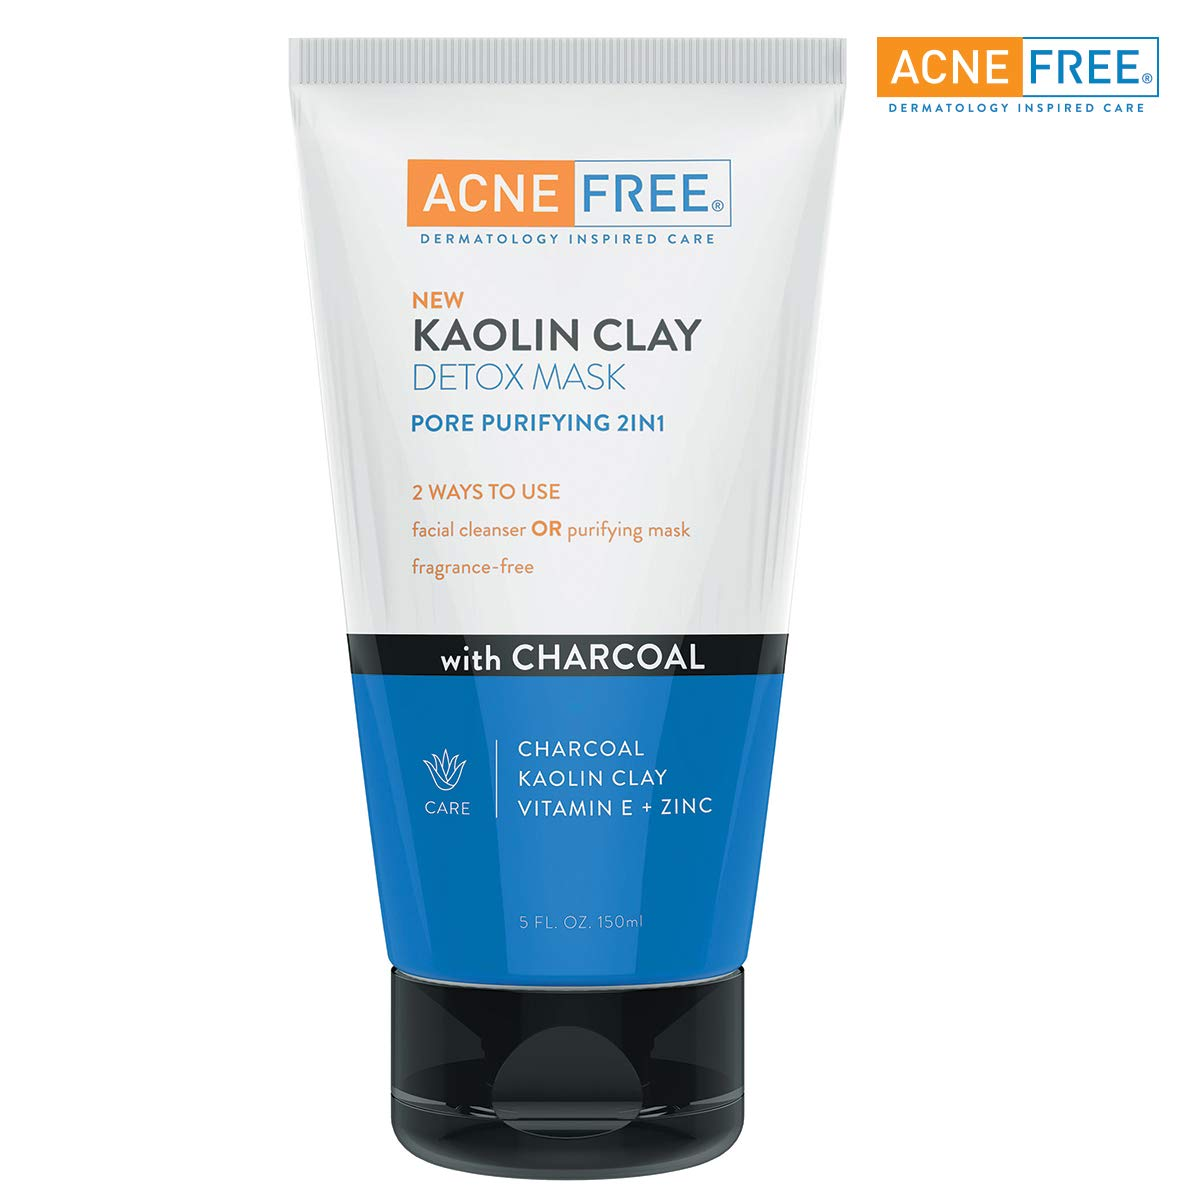 AcneFree Kaolin Clay Detox Mask 5oz with Charcoal, Kaolin Clay, Vitamin E + Zinc, Cleanser or Mask for Oily Skin, To Deeply Clean Pores and Refine Skin